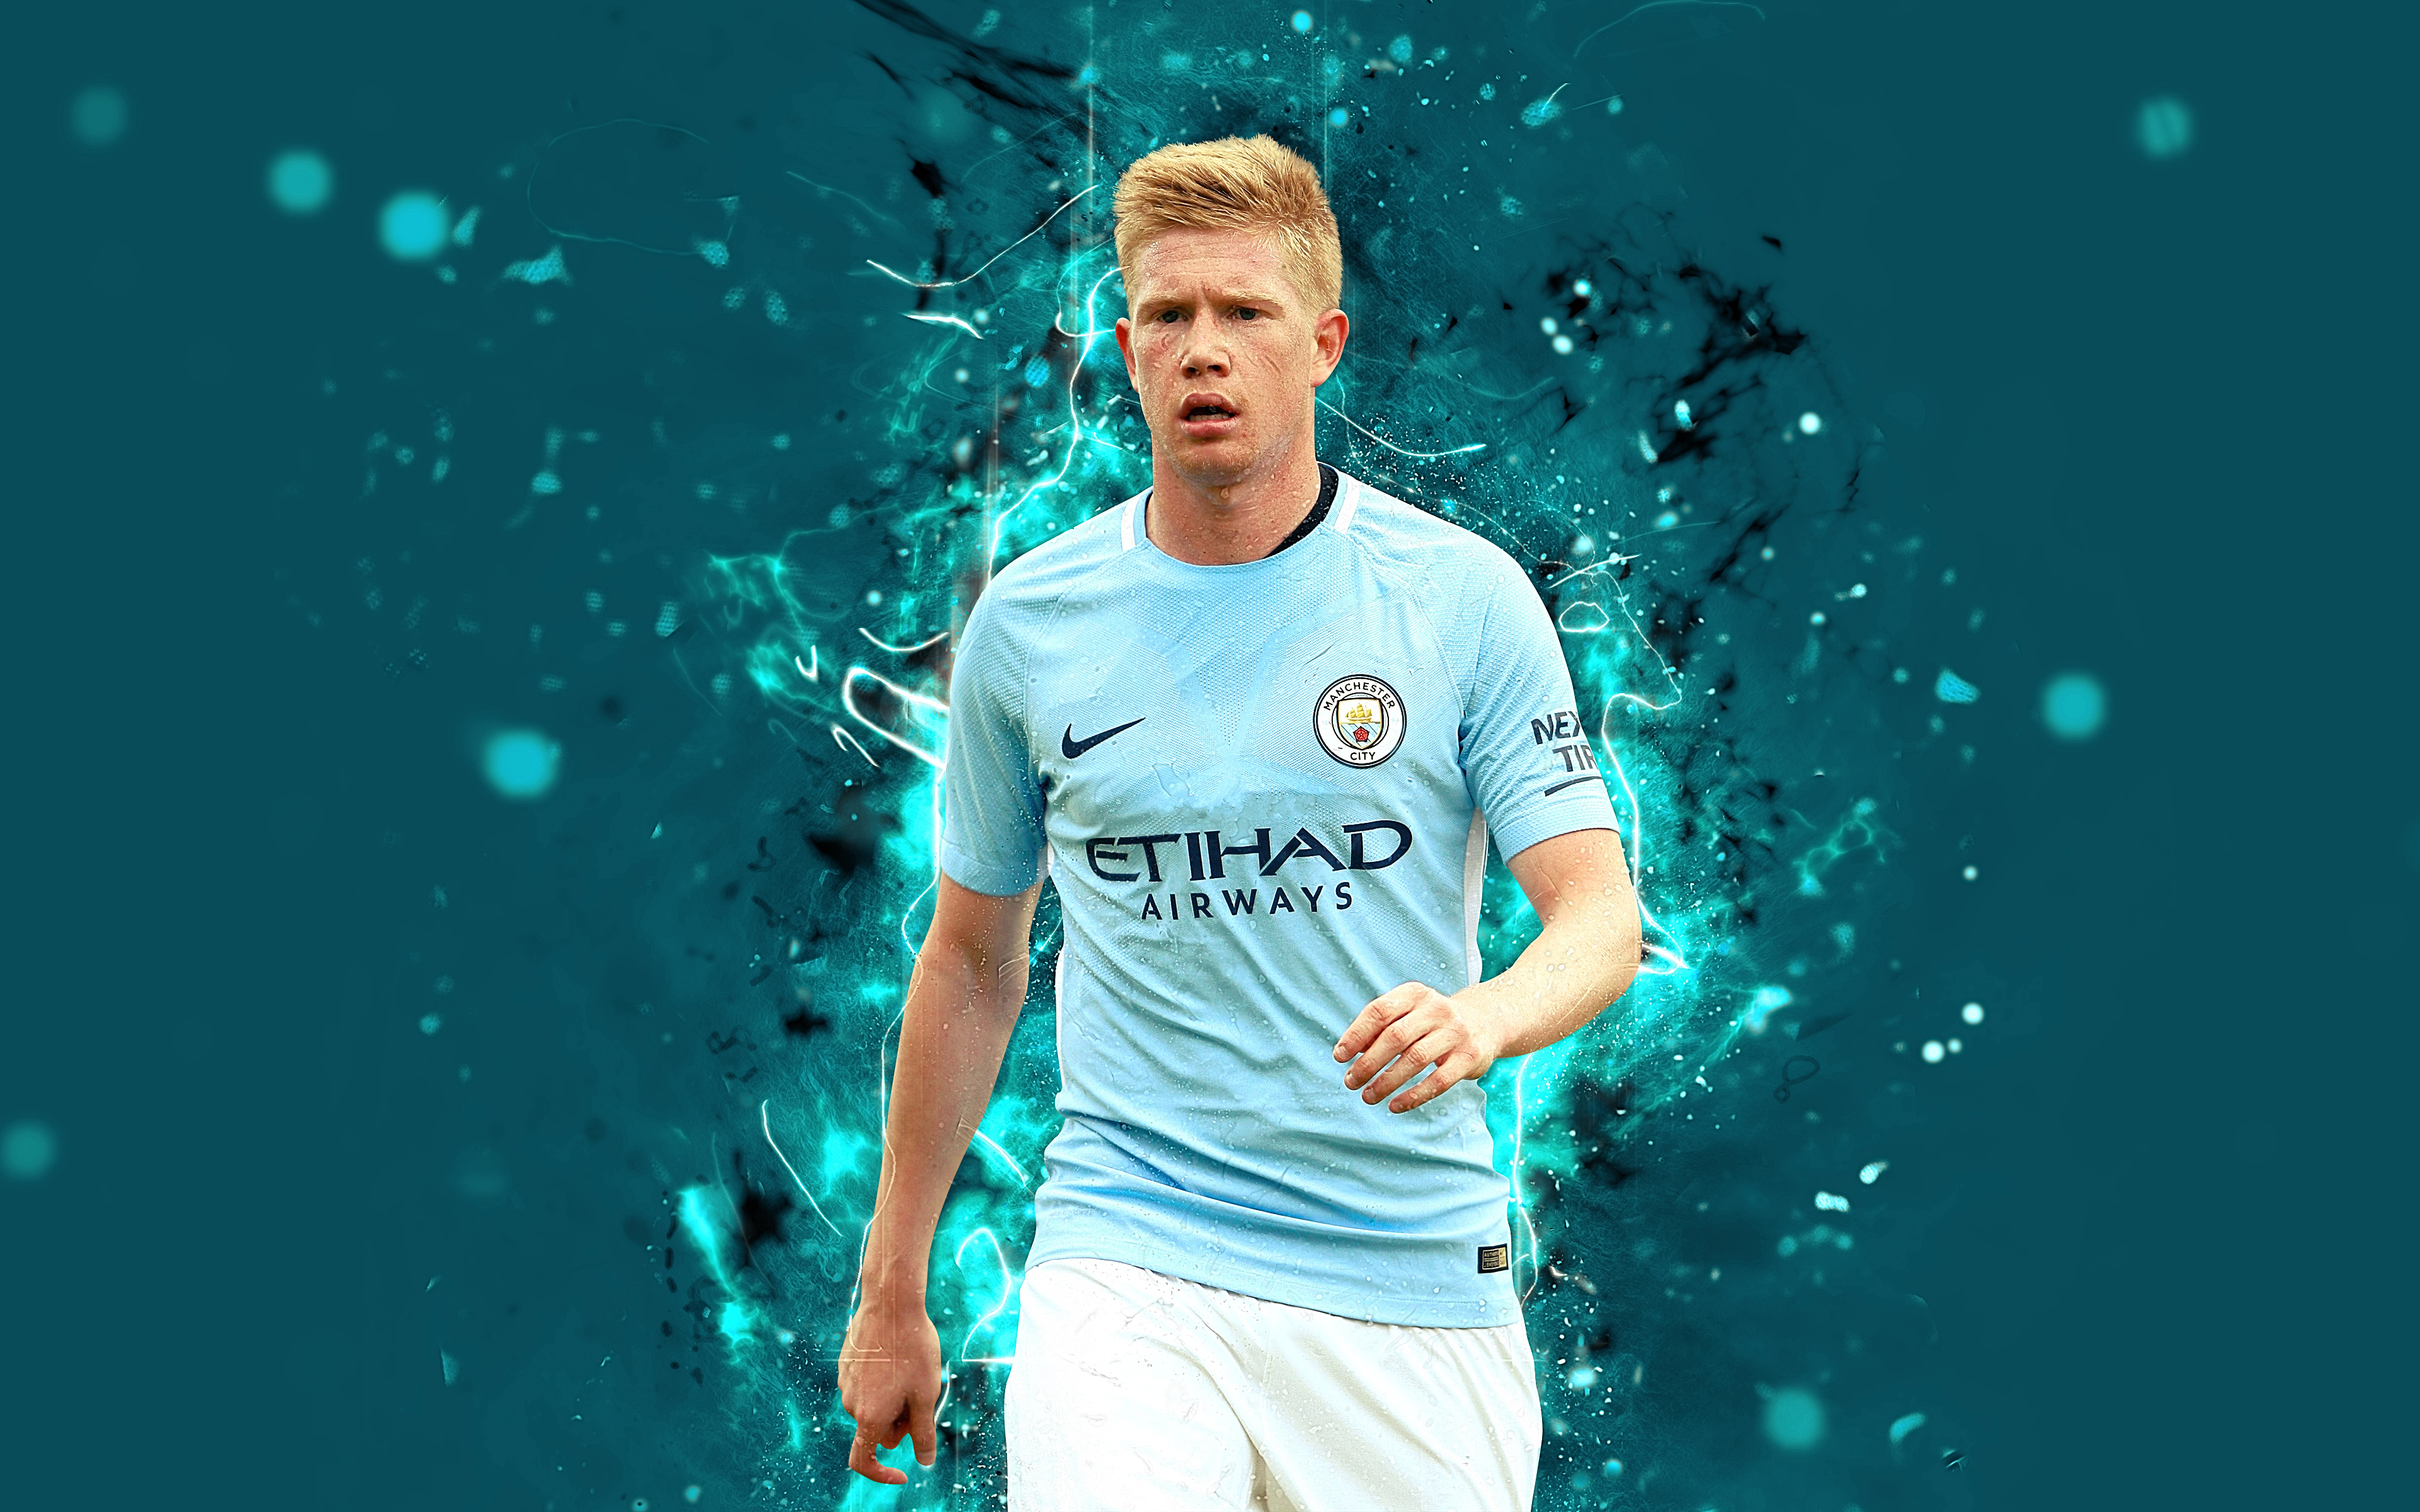 Kevin De Bruyne 4k Ultra HD Wallpaper